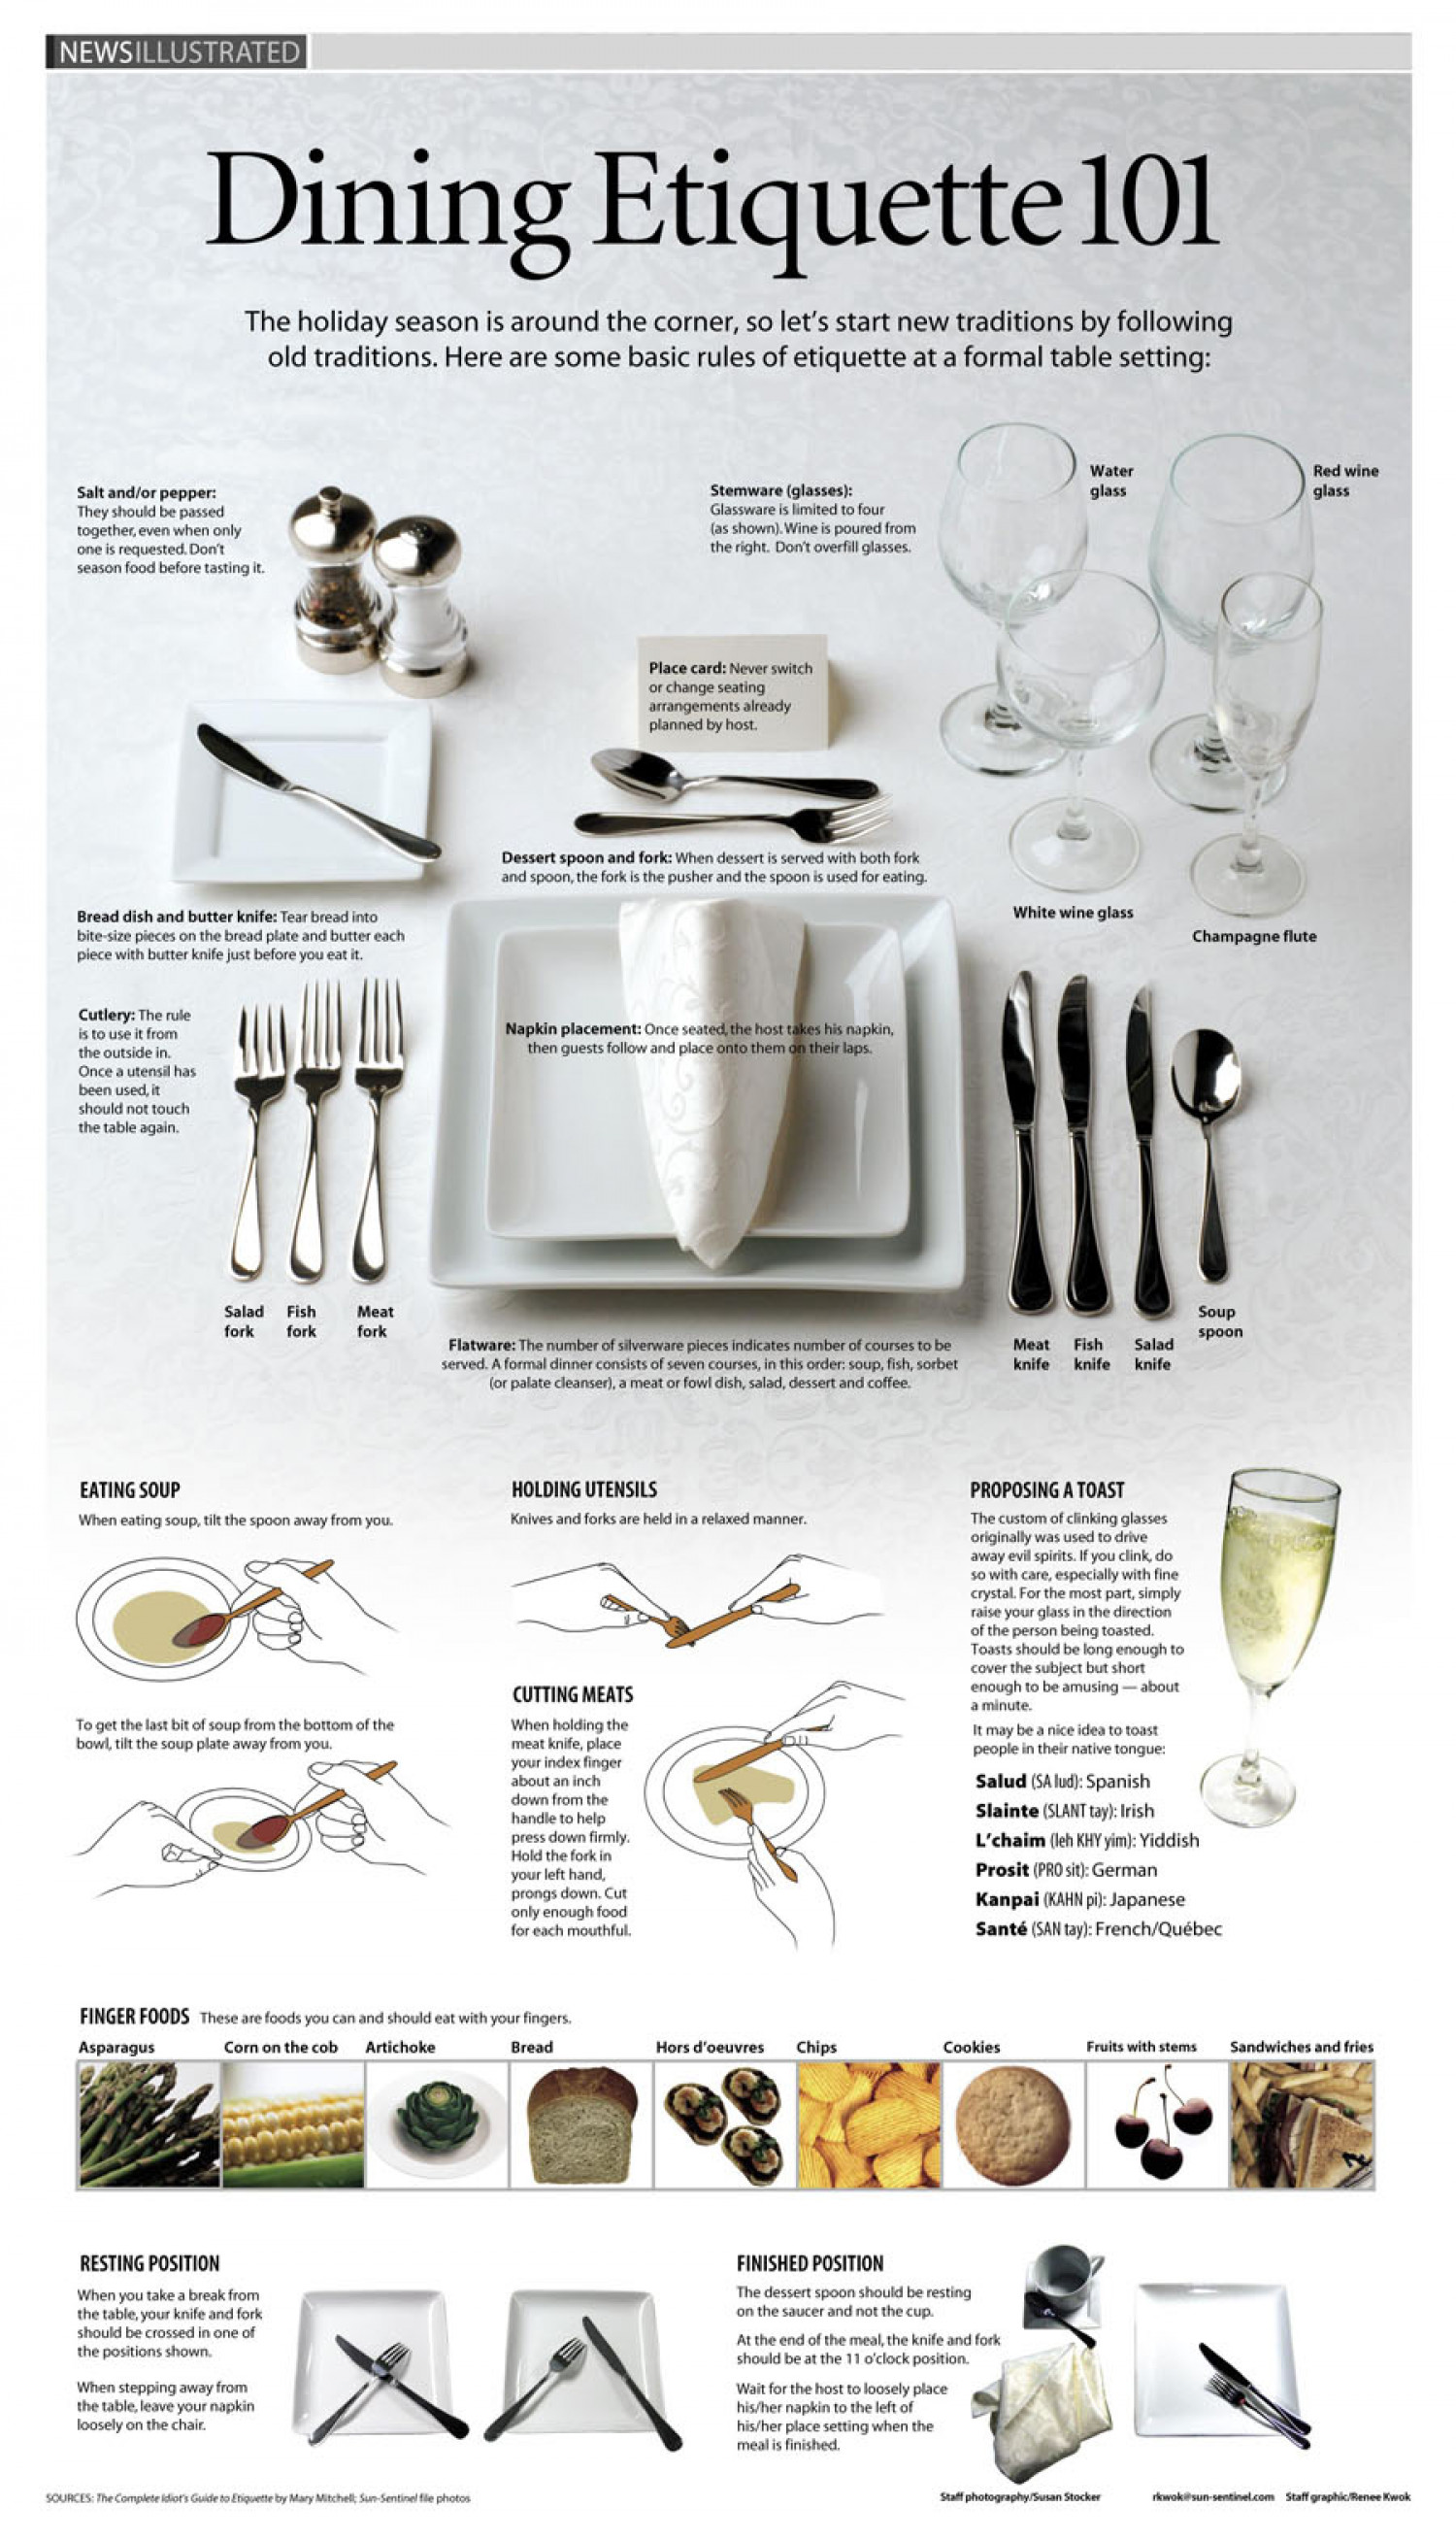 Dining Etiquette 101 Infographic  sc 1 st  Visually & Traditional Formal Table Setting (The Fair Kitchen Tips) | Visual.ly